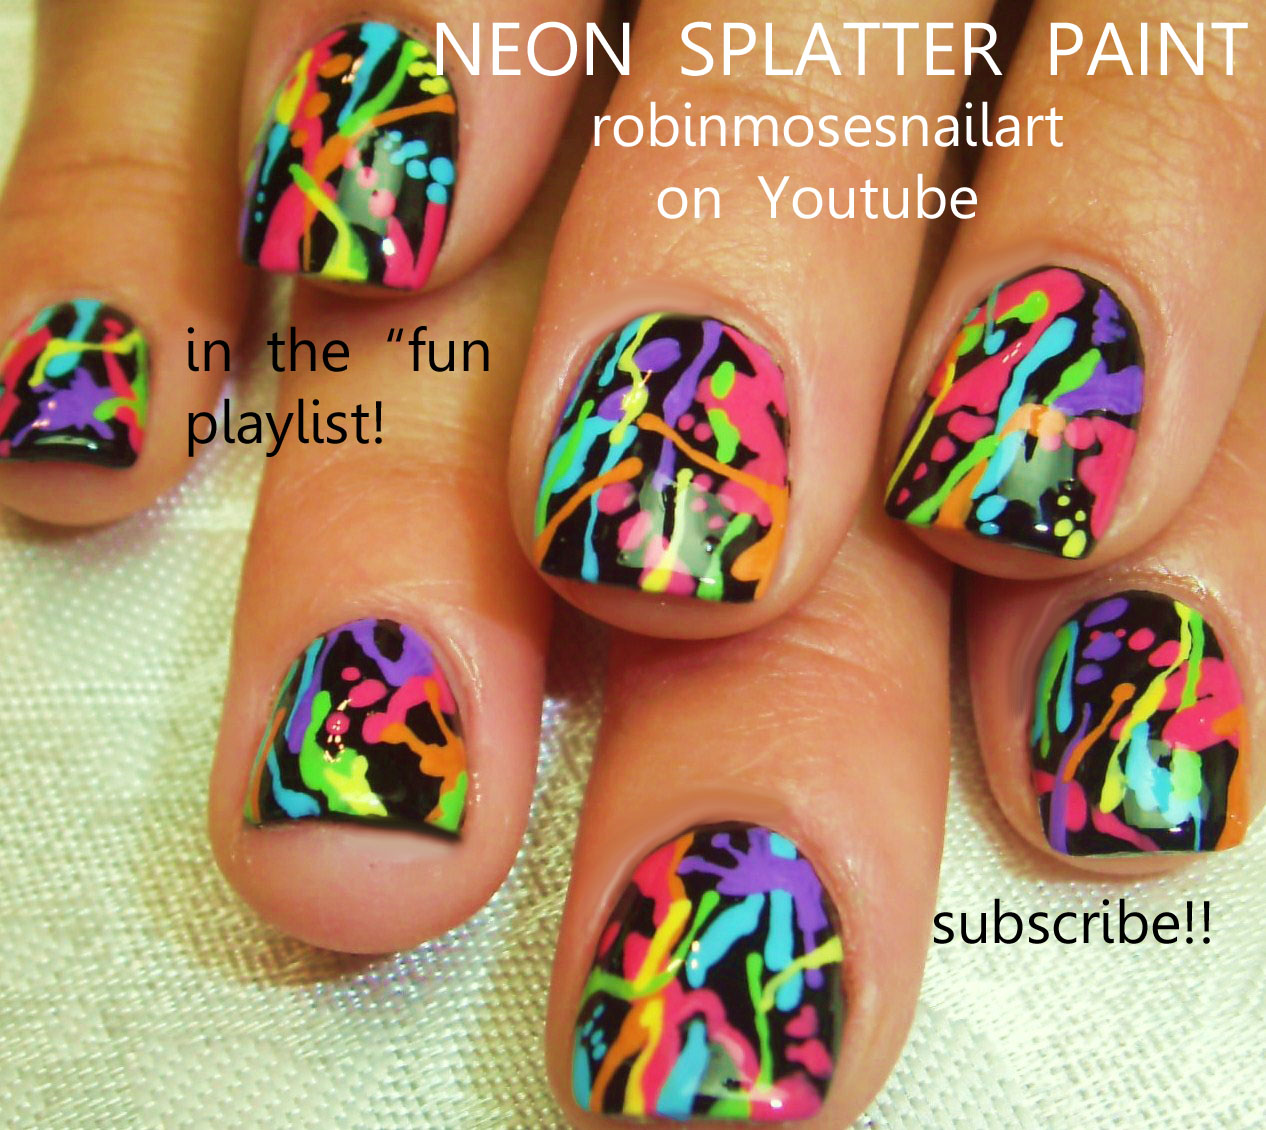 Robin moses nail art splatter paint nails pollock splatter neon neon splatter paint nail art on black nails prinsesfo Image collections